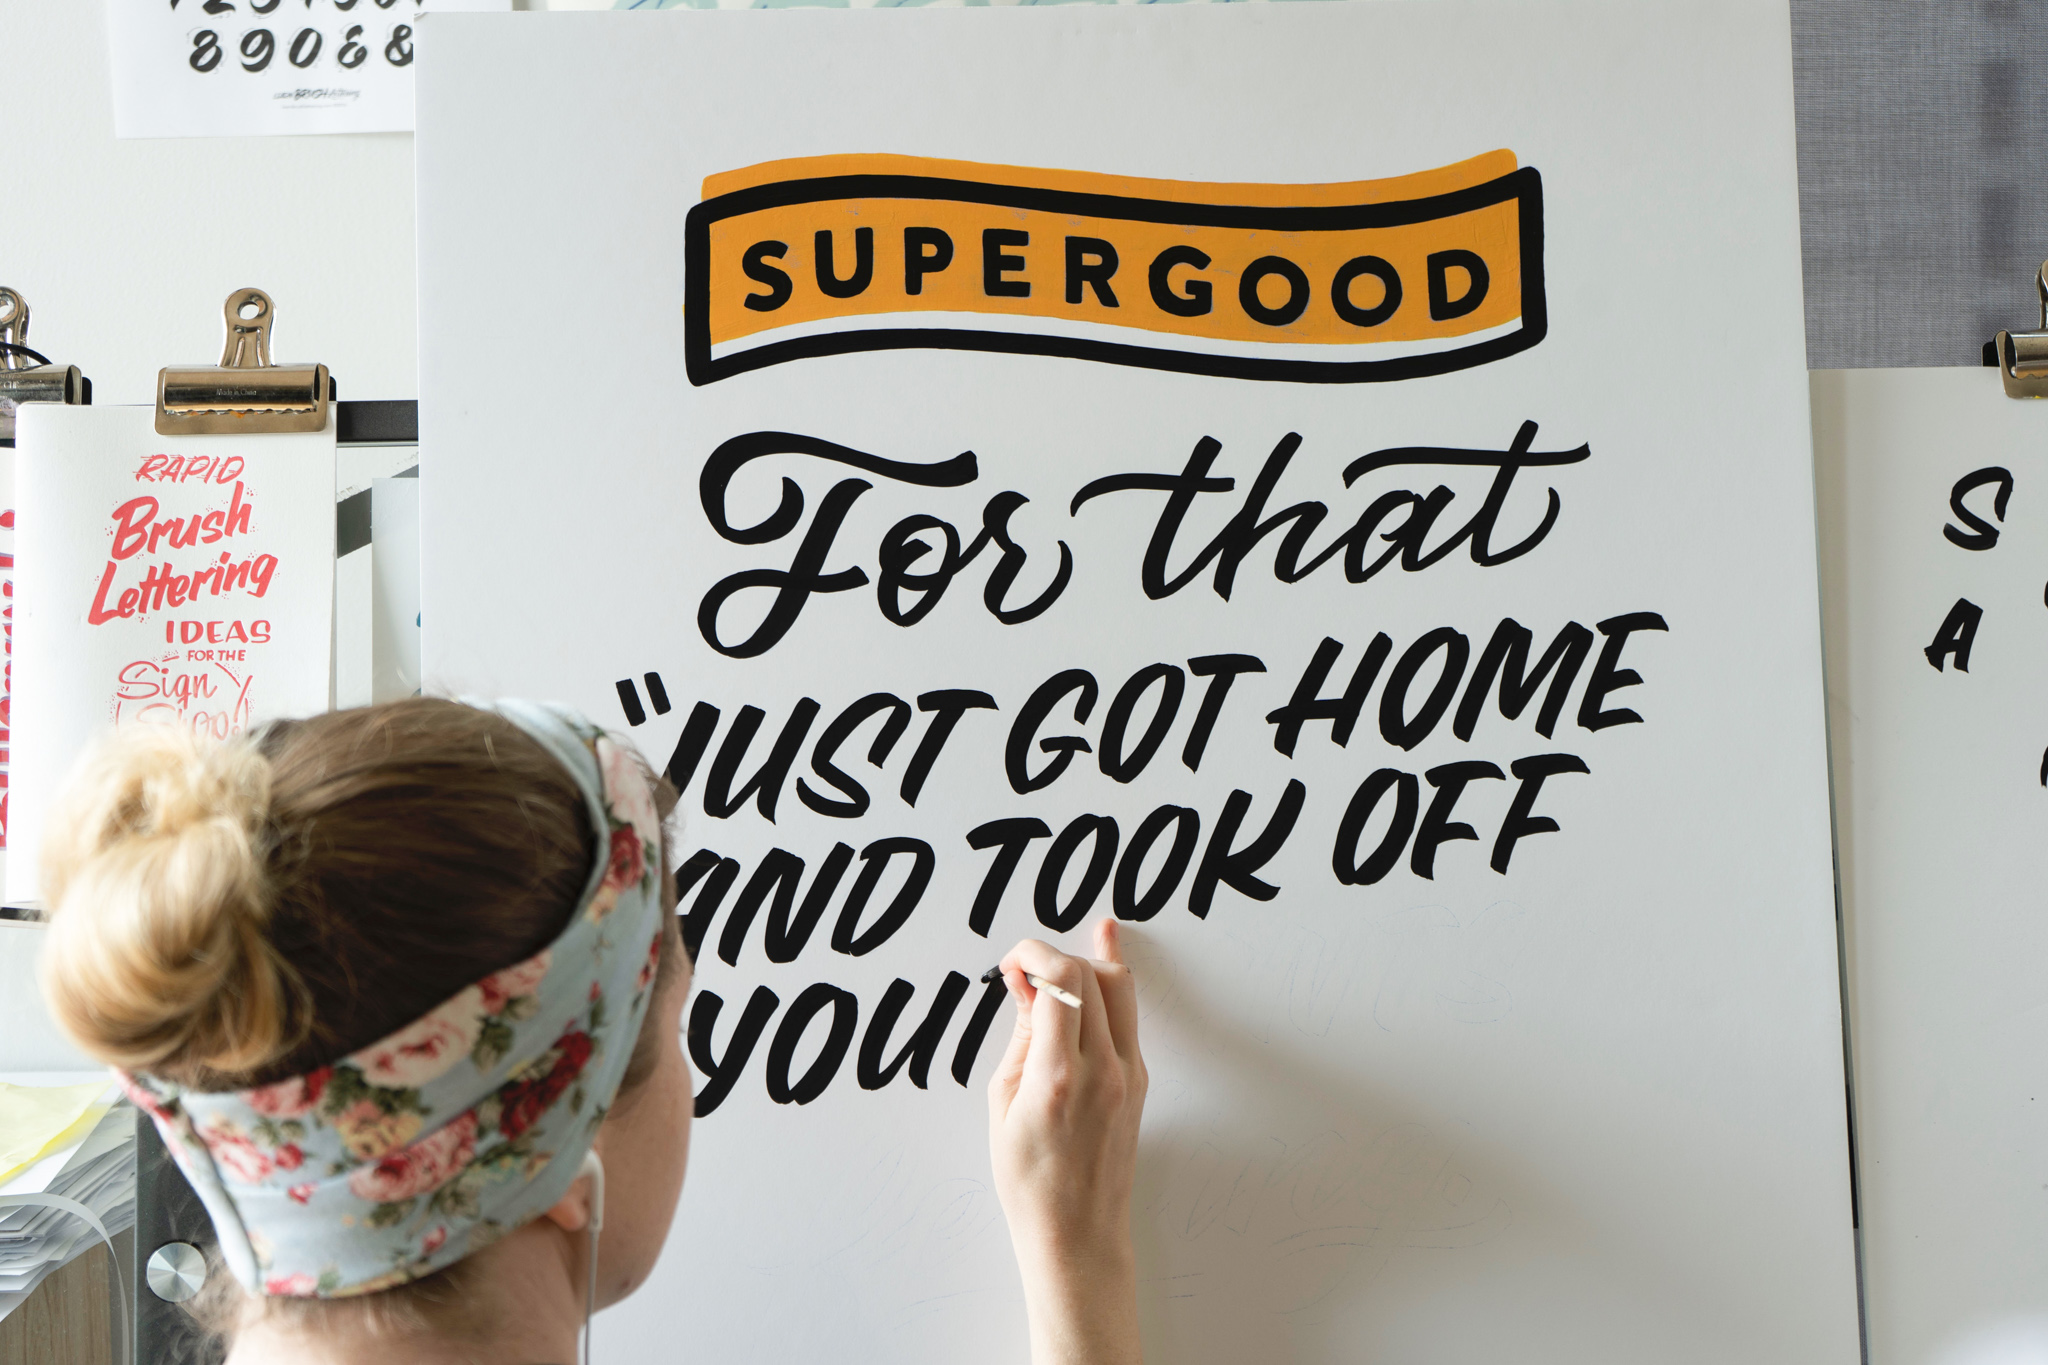 Hand painted sign for Supergood hemp custom painted by Hillery Powers